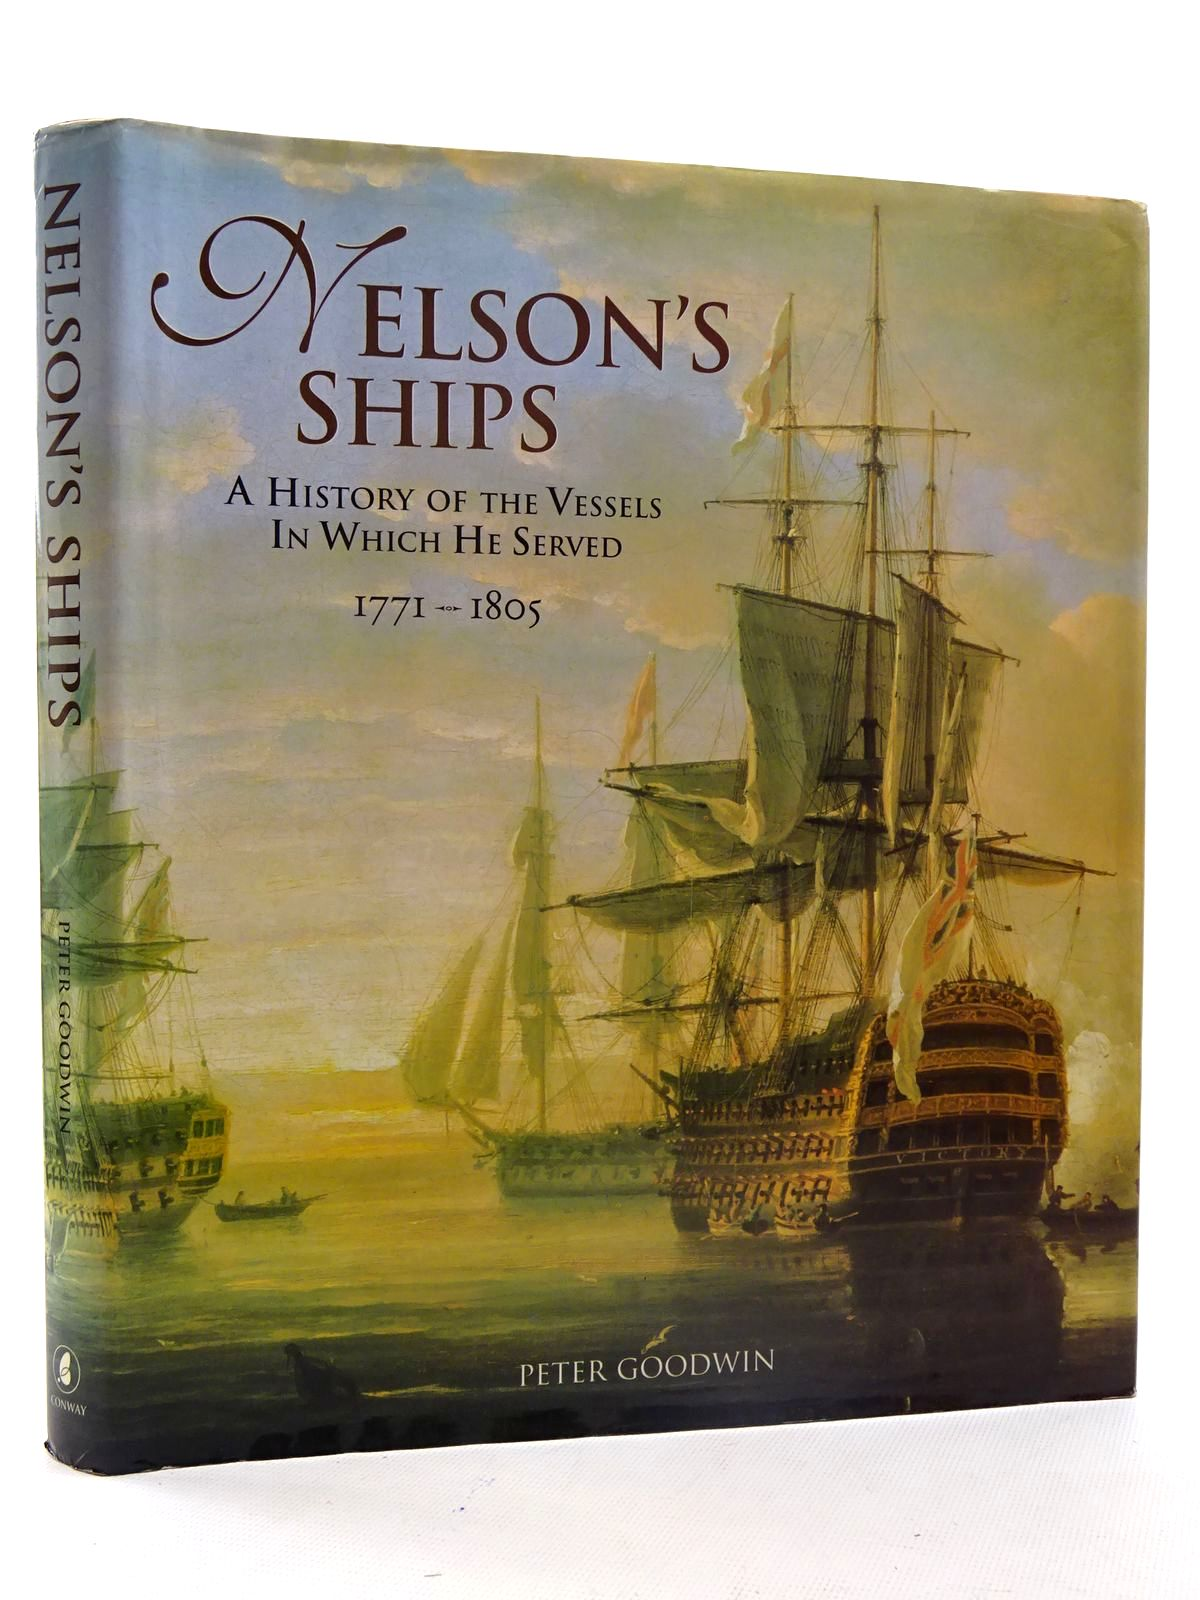 Photo of NELSON'S SHIPS A HISTORY OF THE VESSELS IN WHICH HE SERVED 1771 - 1805 written by Goodwin, Peter published by Conway Maritime Press (STOCK CODE: 2125475)  for sale by Stella & Rose's Books